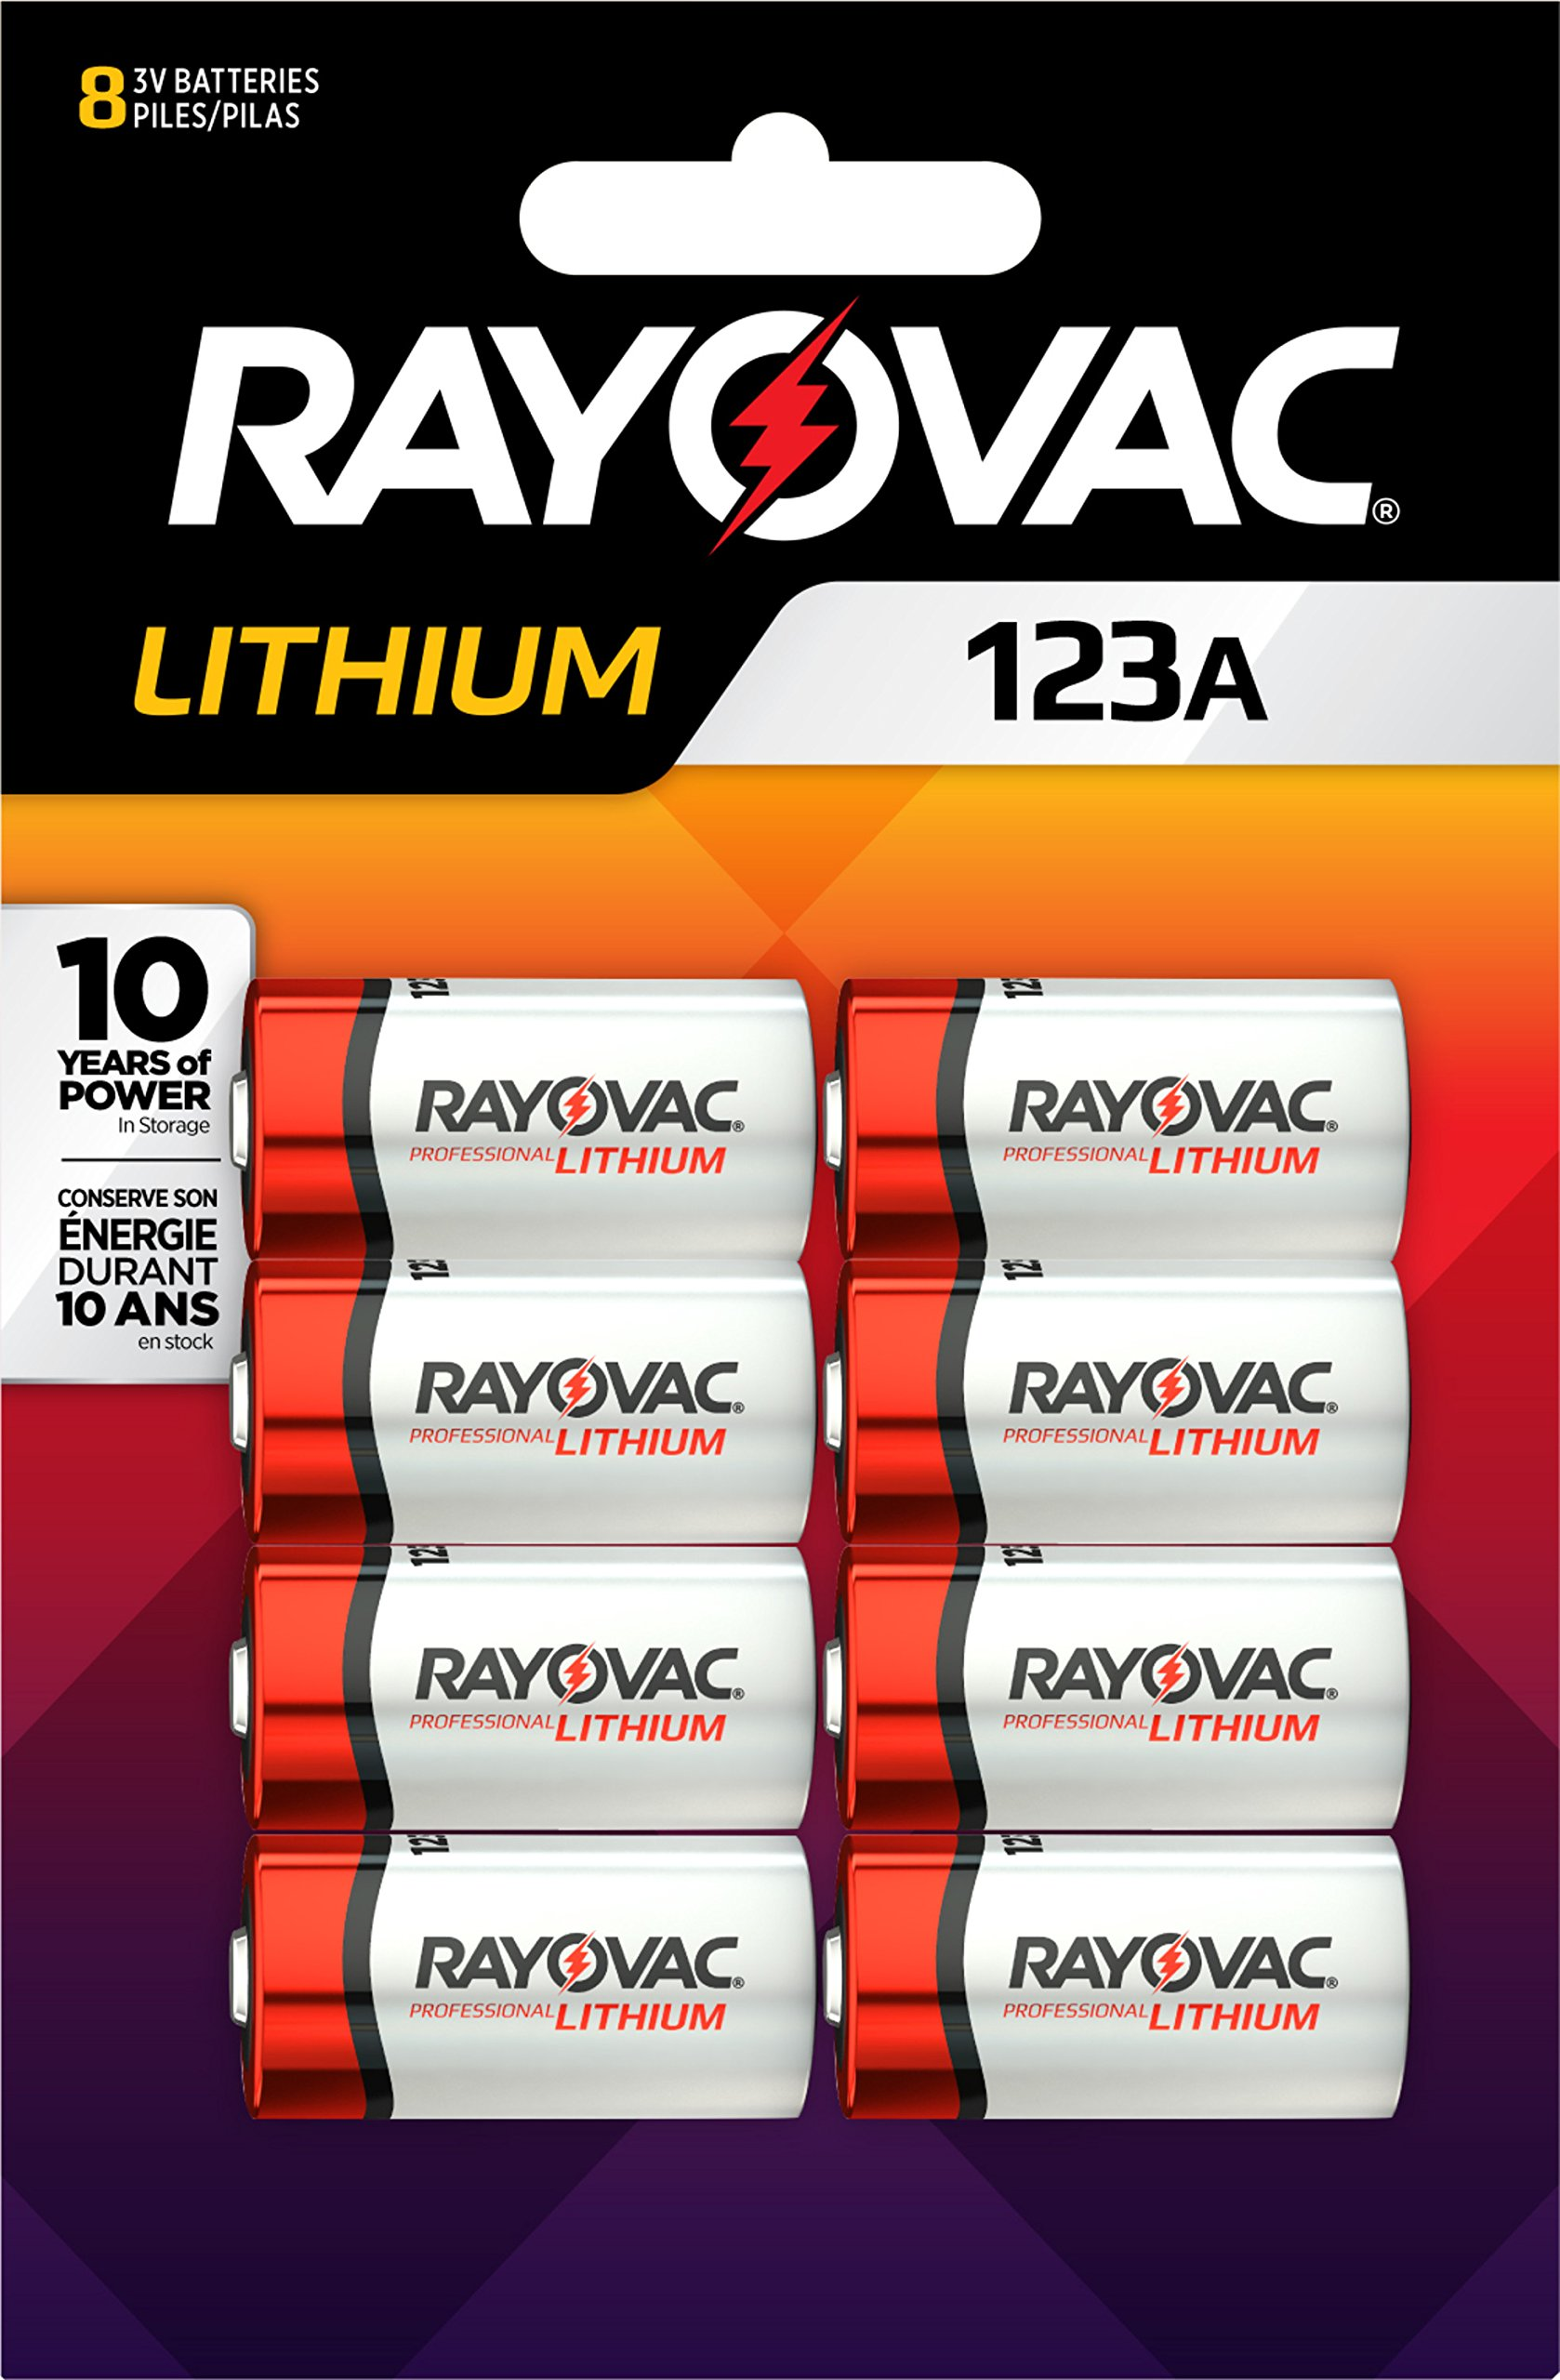 Rayovac 123A Lithium Batteries, 3V Lithium Photo Batteries (8 Battery Count) by Rayovac